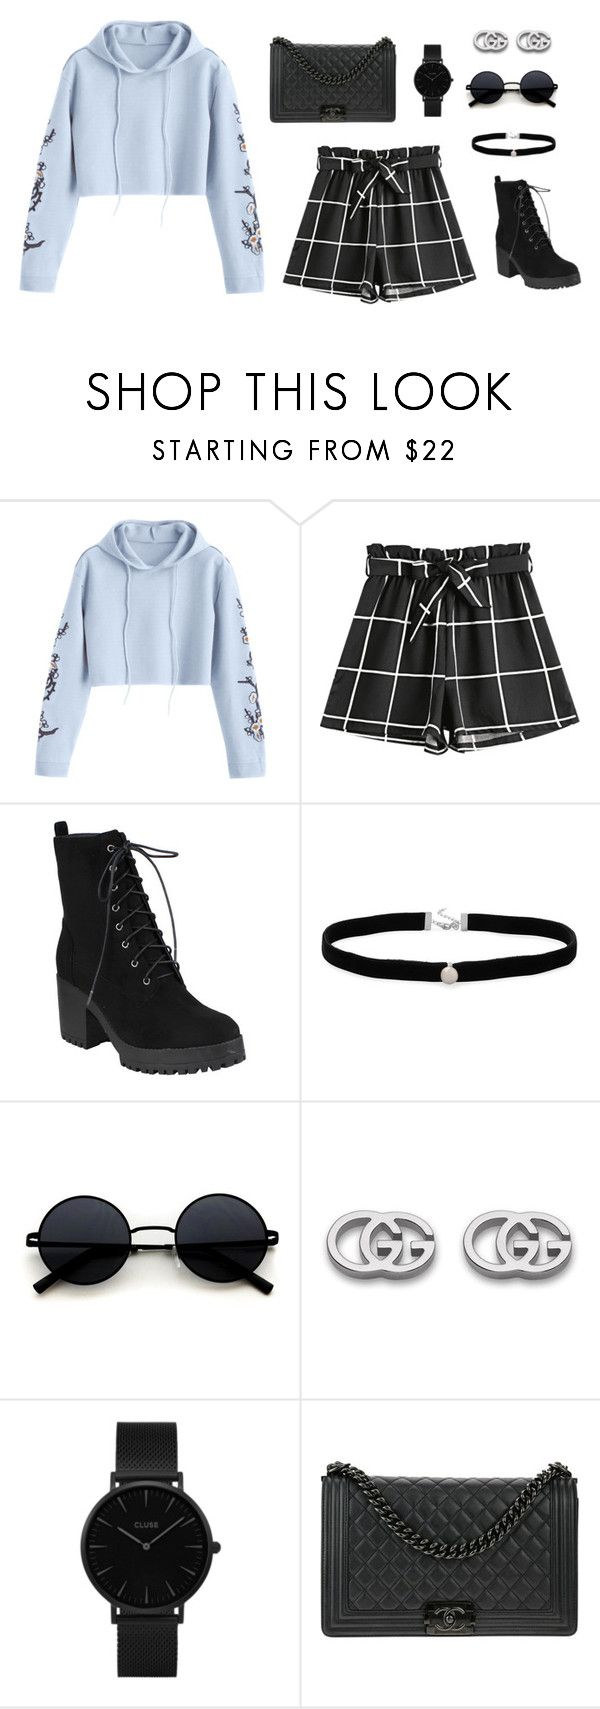 """Untitled #1202"" by mkk-18 ❤ liked on Polyvore featuring Amanda Rose Collection, Gucci, CLUSE and Chanel"